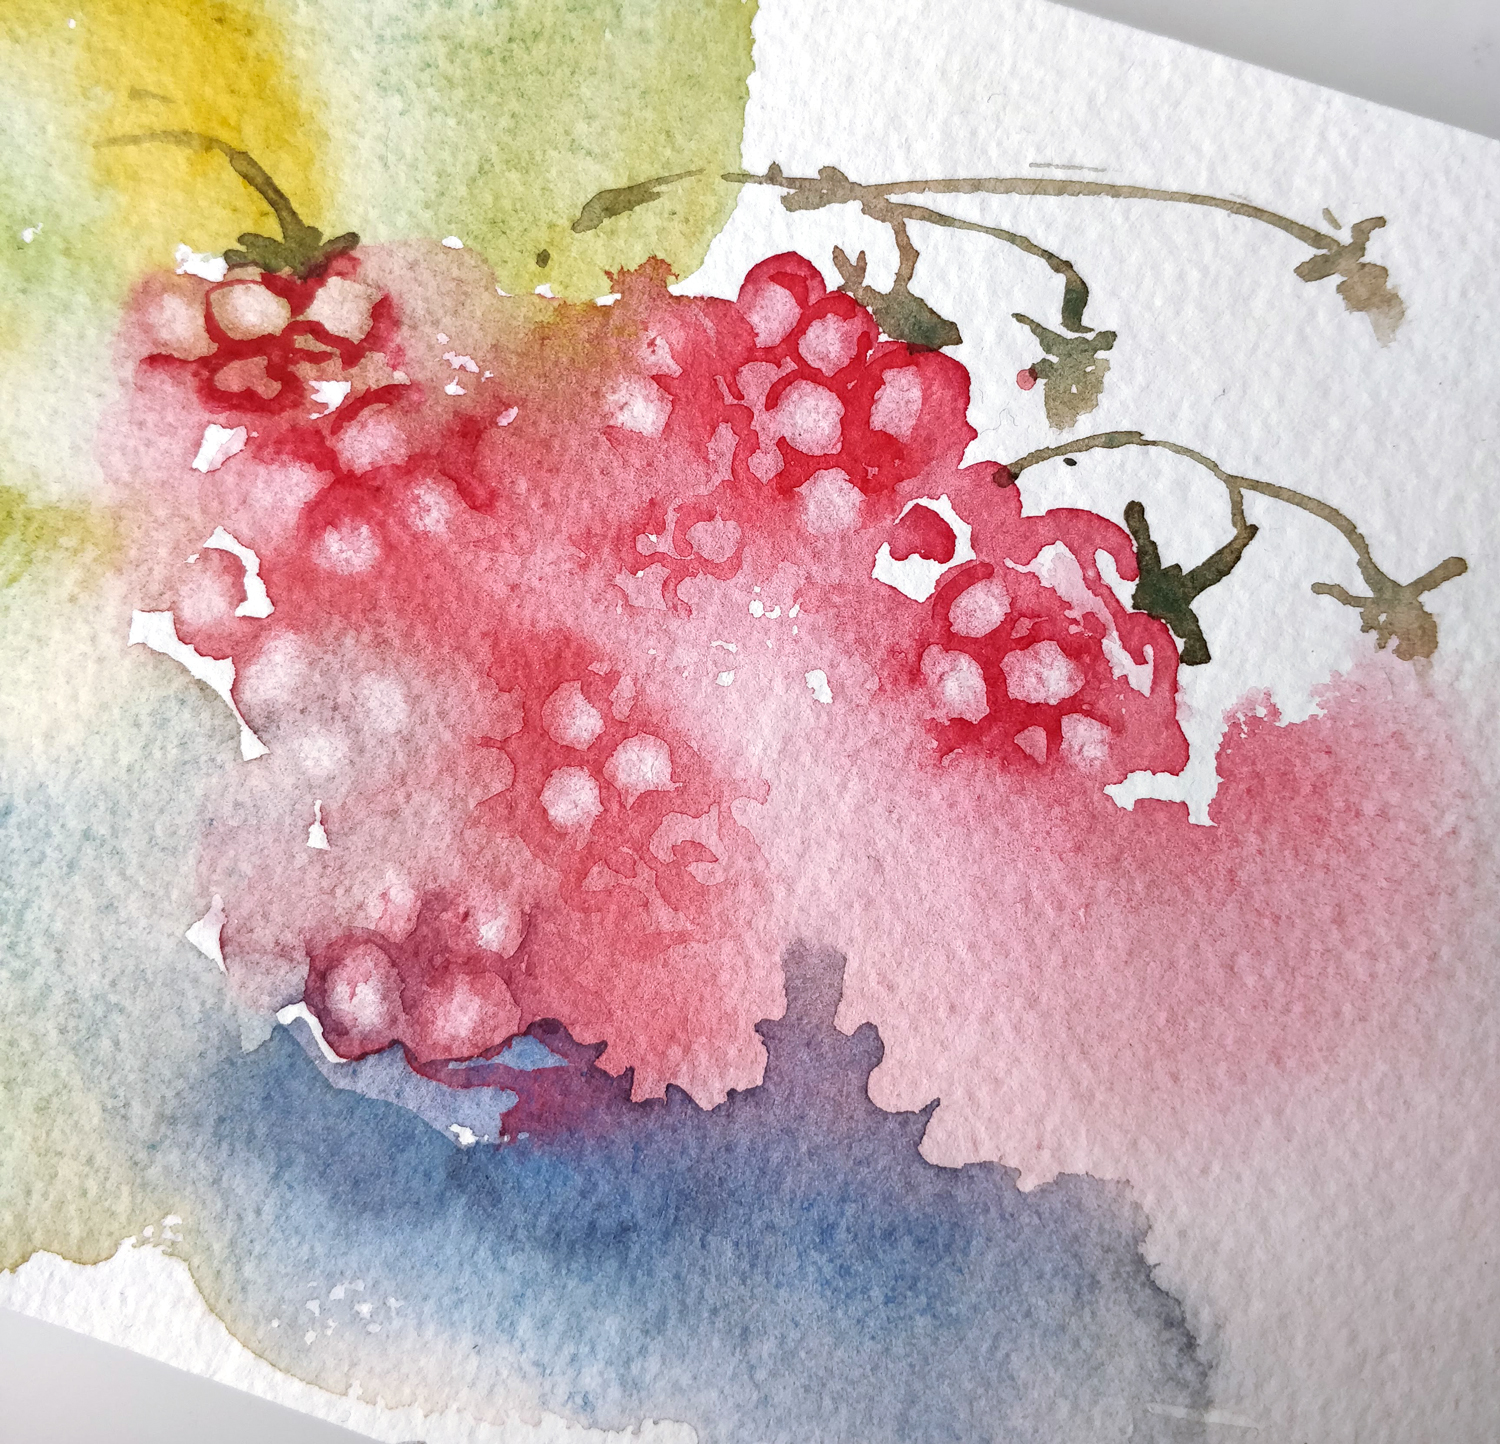 Study of raspberry in watercolor